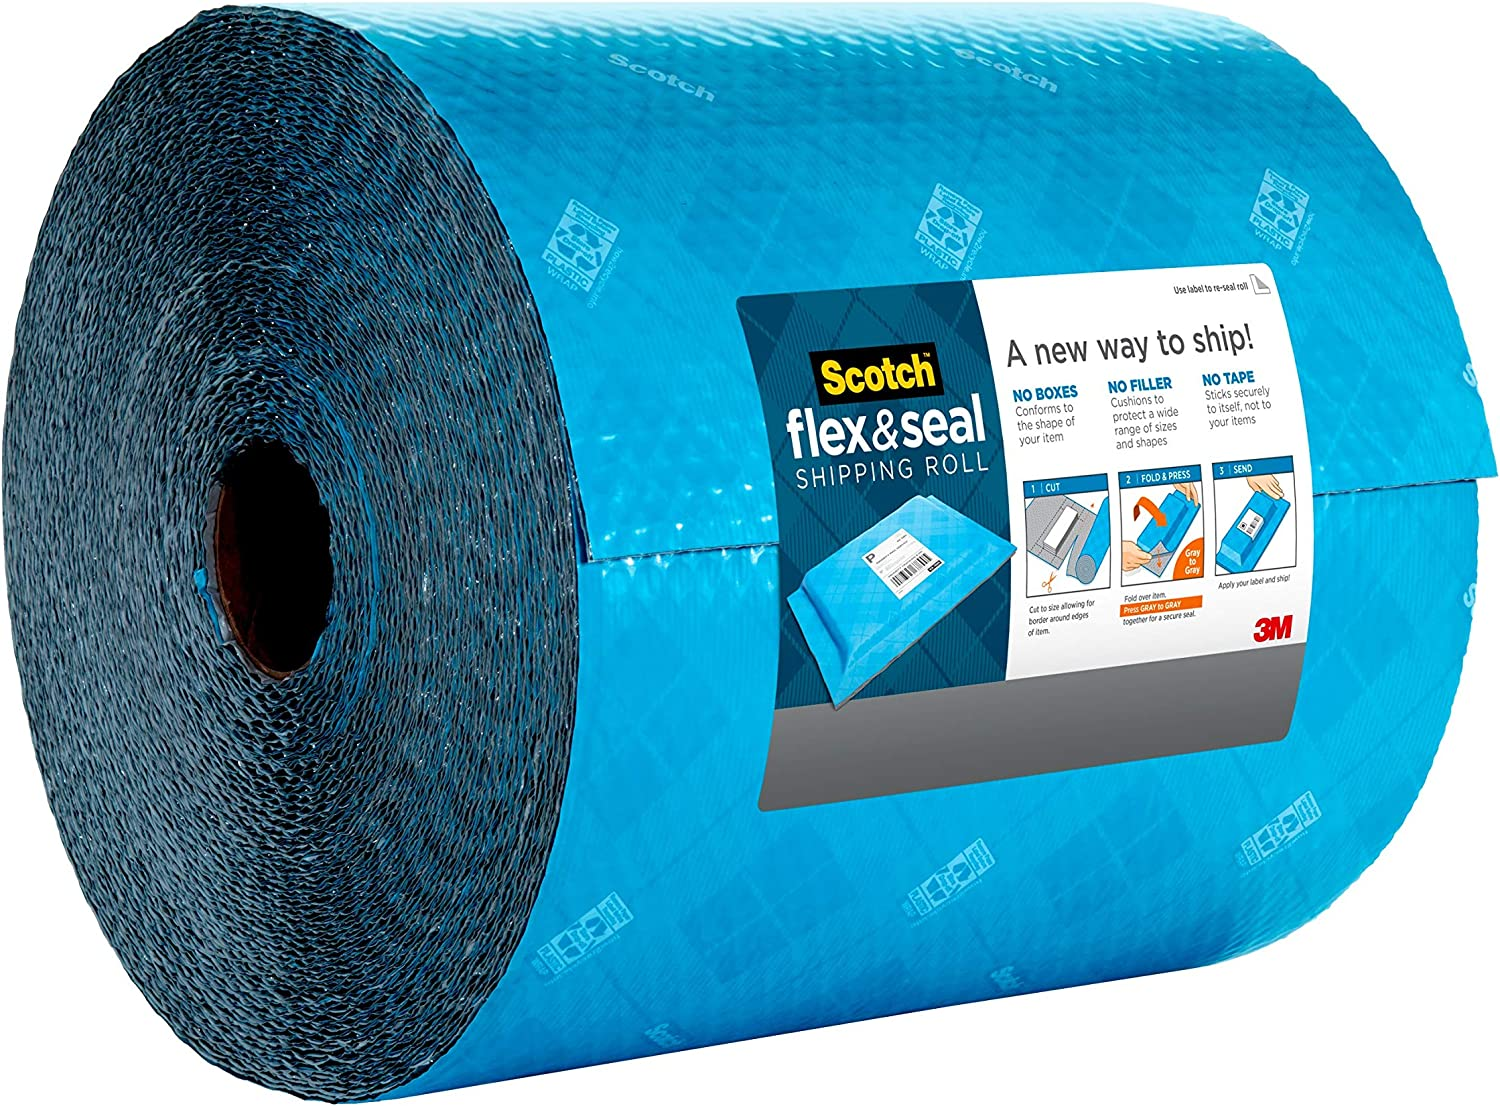 Simple Packaging Alternative to Cardboard Boxes 2 Pack 20 Ft x 15 in Bubble Mailers Poly Bags Cushioning Scotch Flex /& Seal Shipping Roll